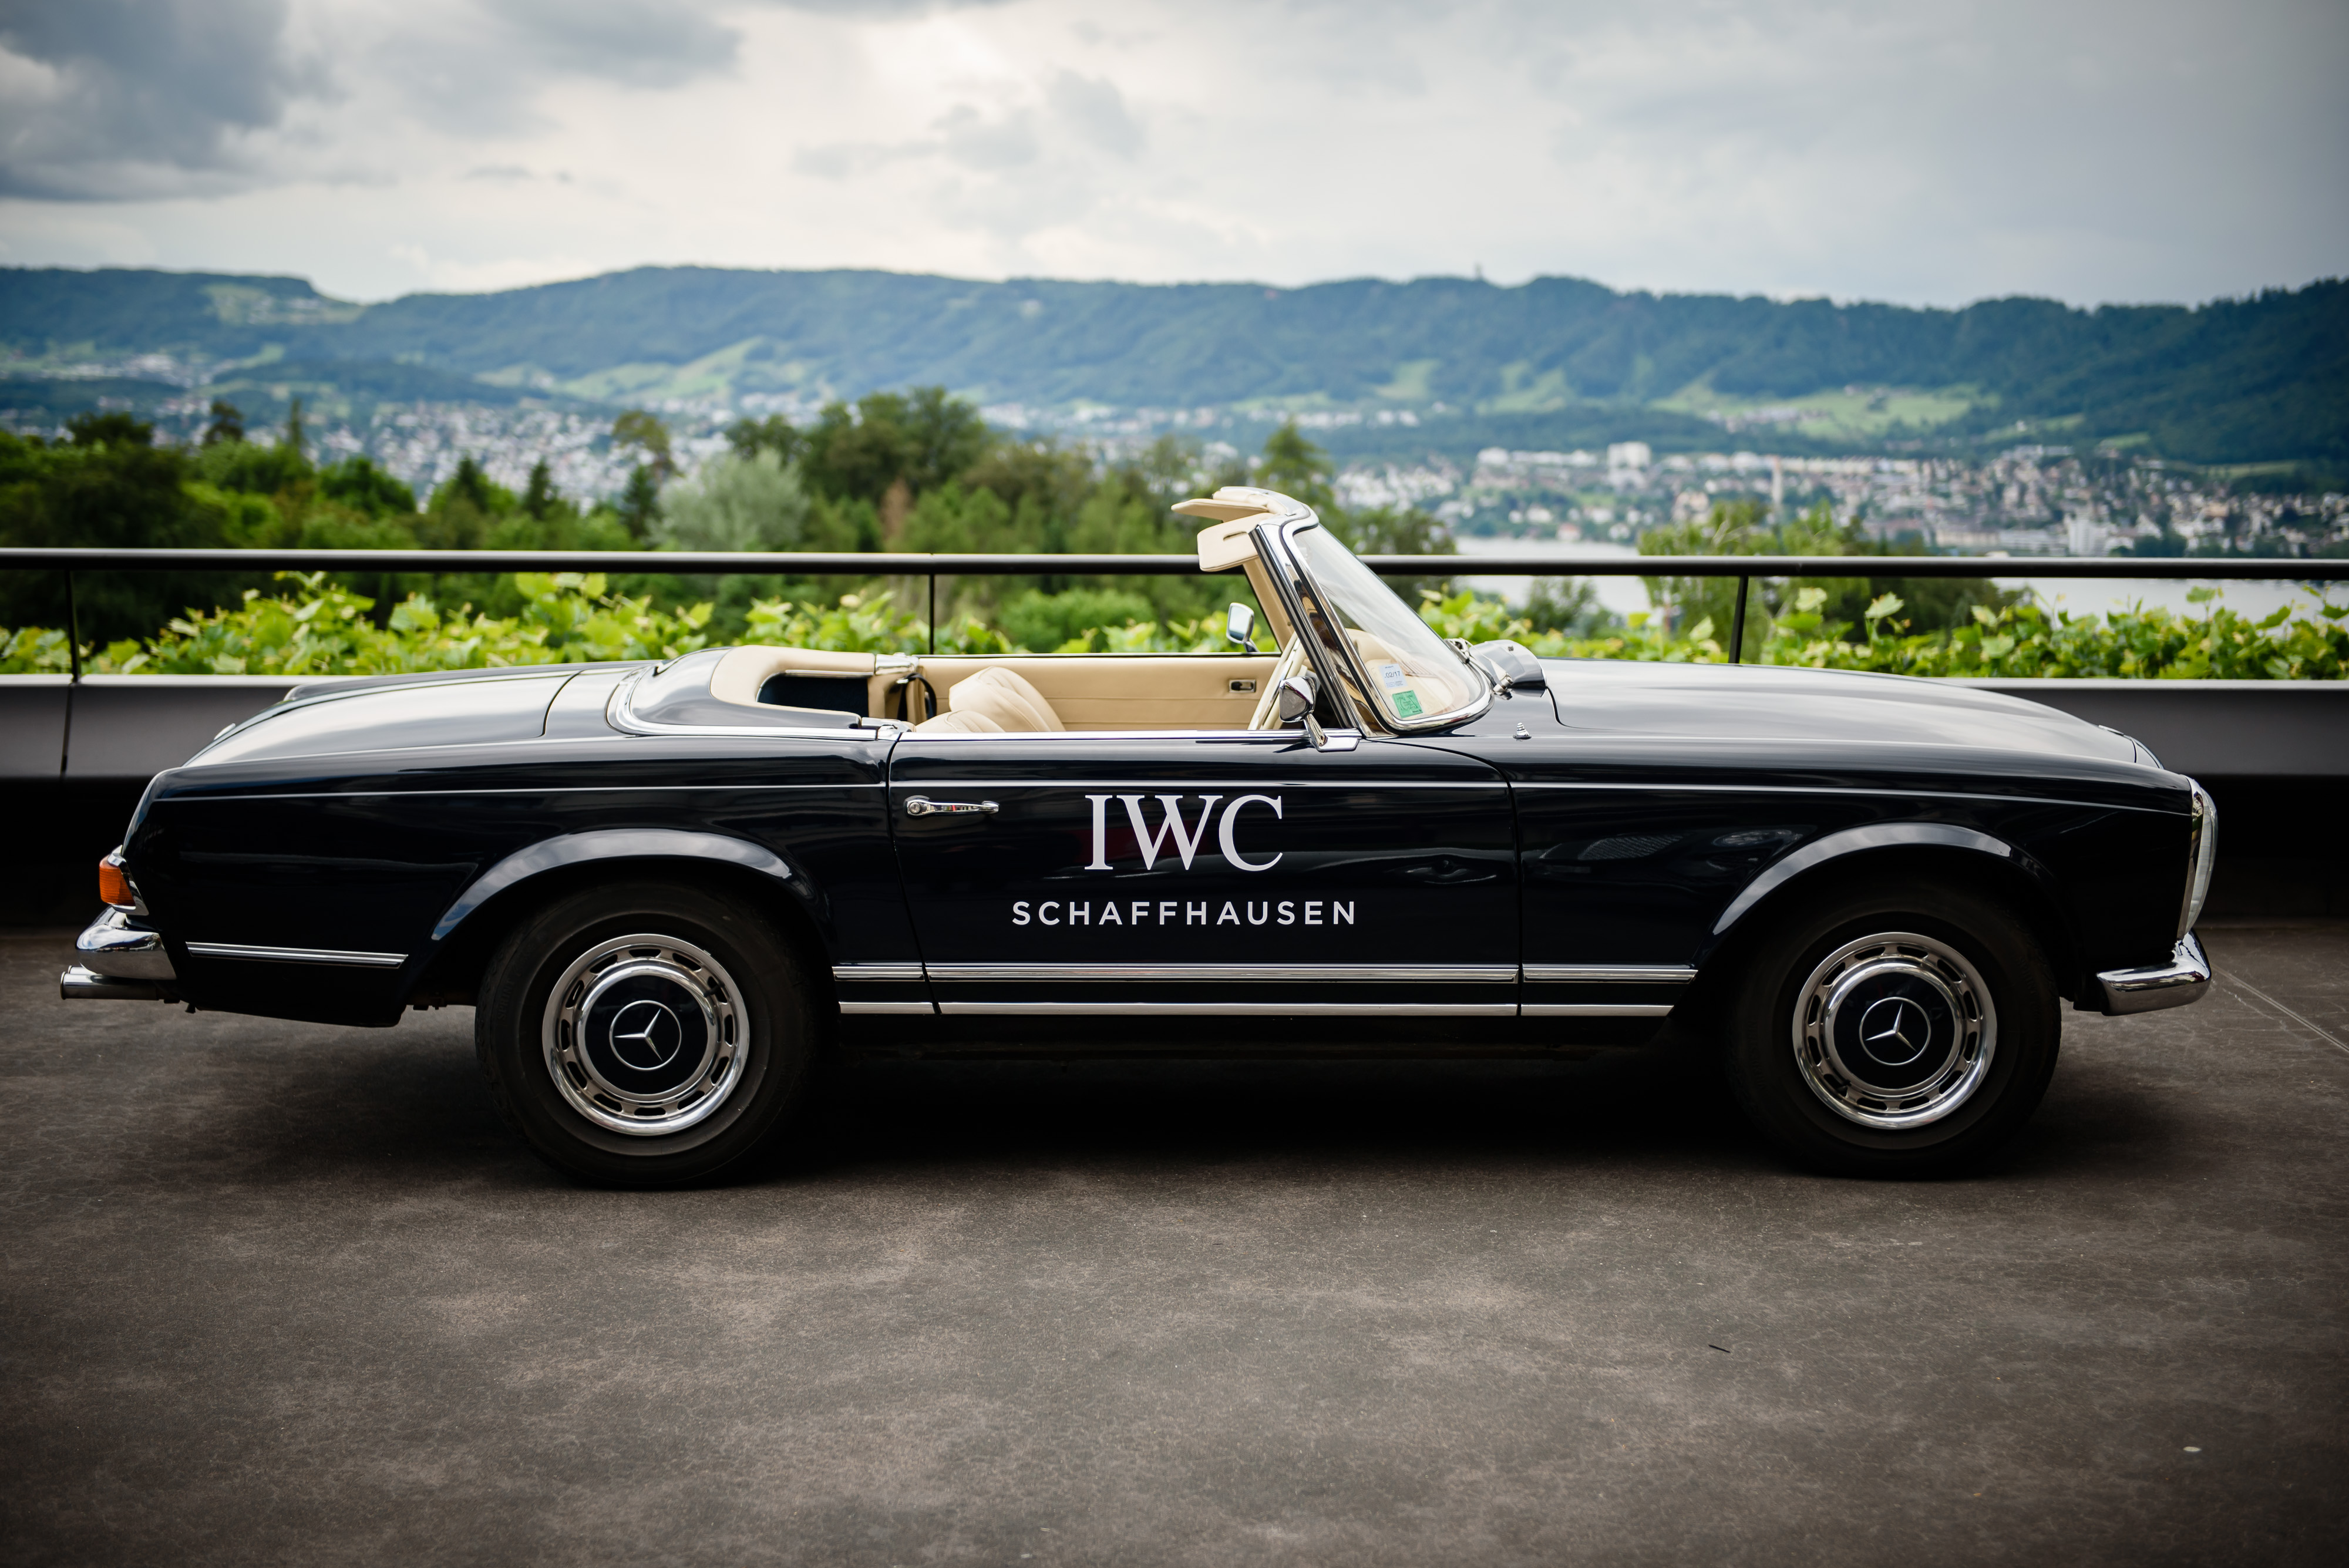 """HANDOUT - Zurich 15 June 2016, a general view during the IWC Schaffhausen watch launch to mark the start of the Passione Caracciola at the Dolder Grand Hotel in Zurich. The Swiss luxury watch manufacturer presented the two special editions from the Ingenieur watch family. The Ingenieur Chronograph Edition """"Rudolf Caracciola"""" is dedicated to an exceptionally talented racing driver of the 1930s, while the Ingenieur Chronograph Edition """"W 125"""" recalls the legendary Silver Arrow from Mercedes-Benz. Both models are limited to 750 examples worldwide and powered by the new IWC- manufactured 69370 calibre. (PHOTOPRESS/IWC)"""